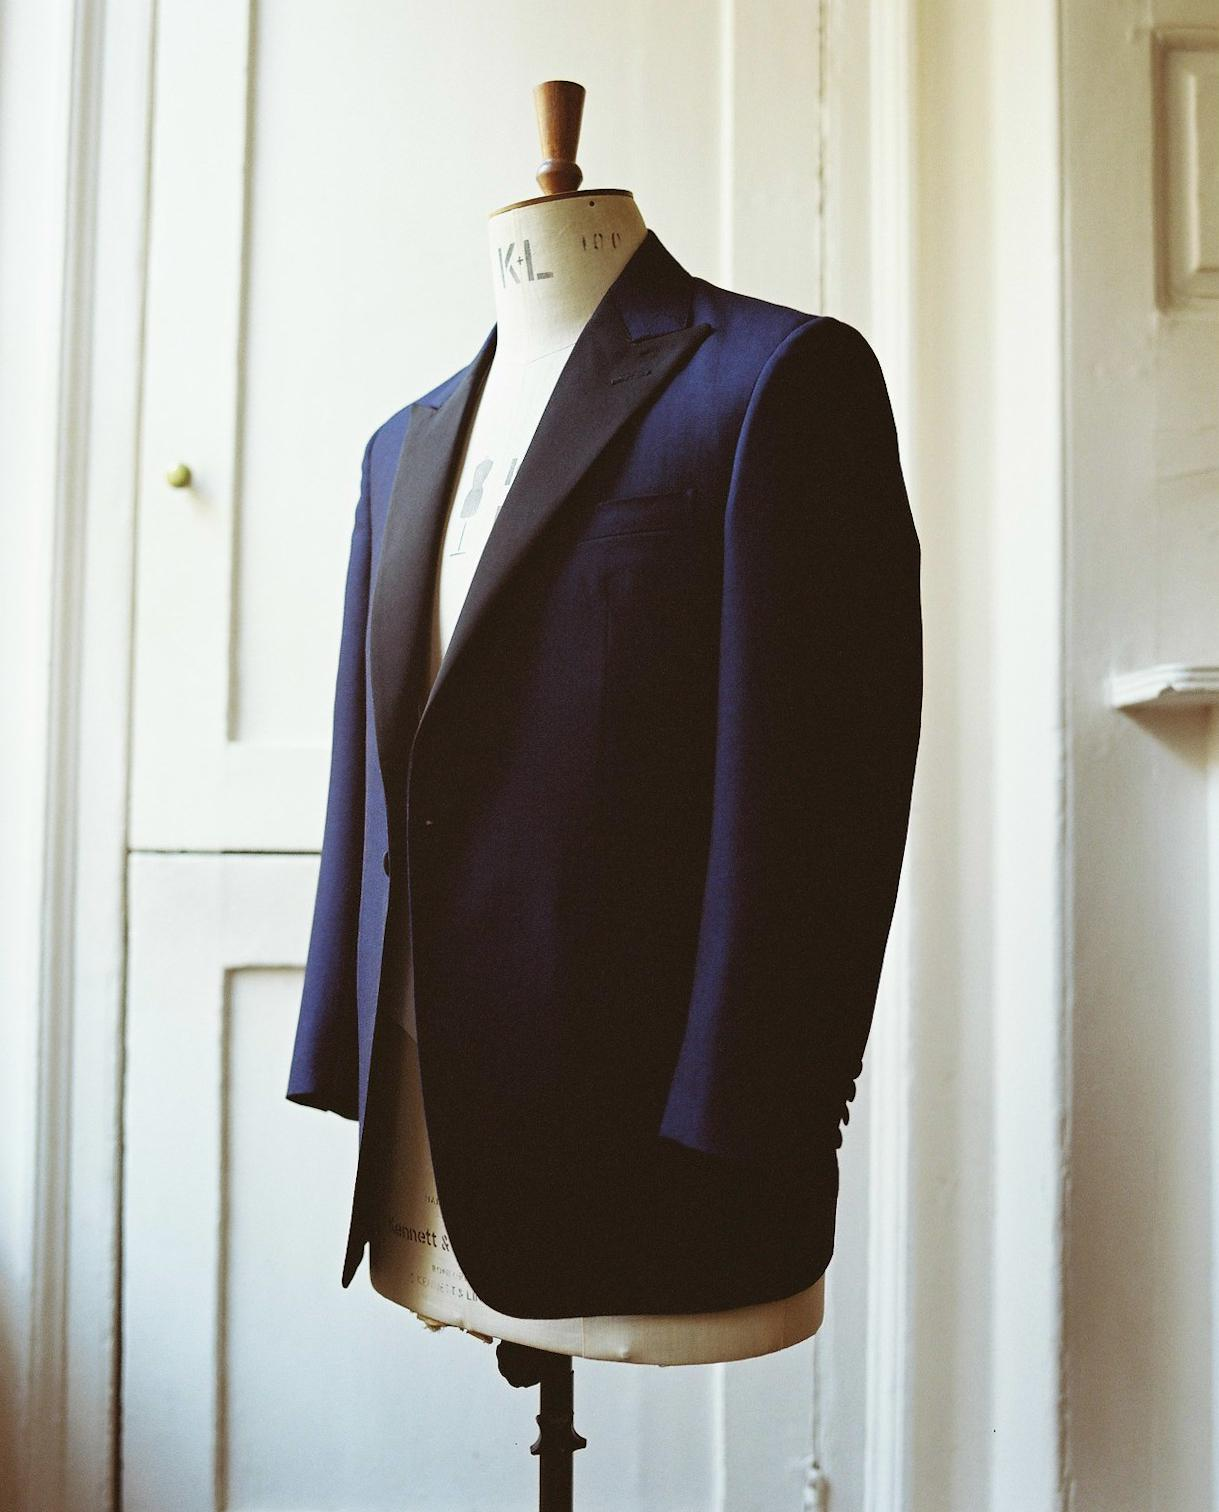 Top Tips when Buying Made to Measure Suits